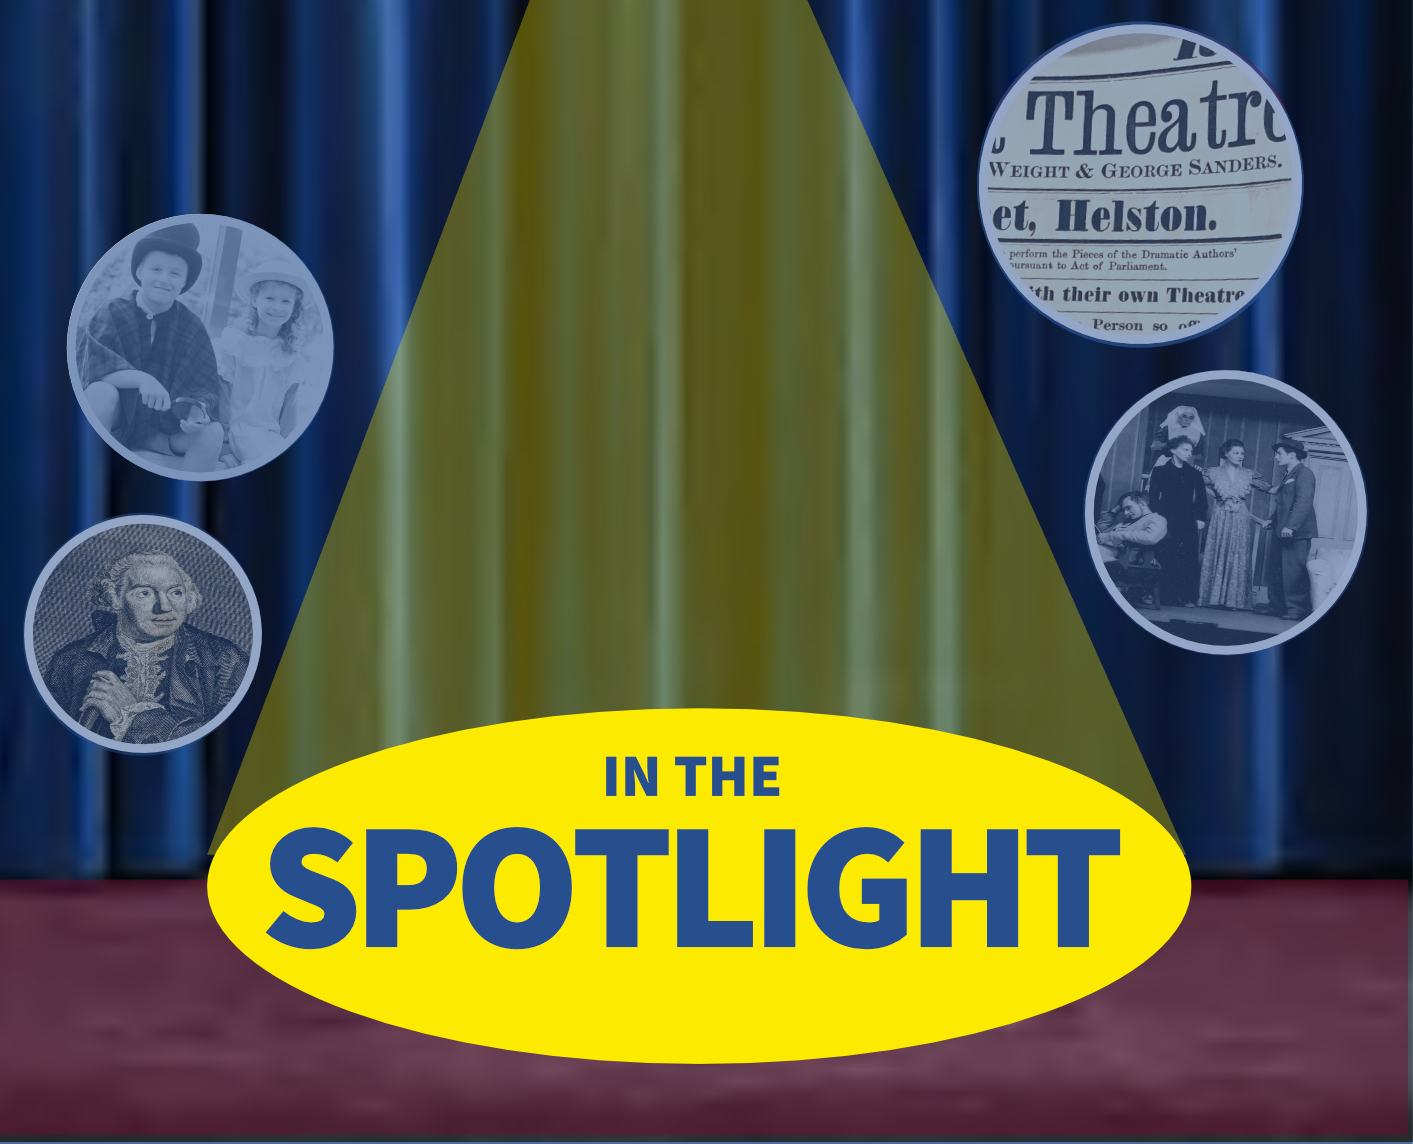 In the Spotlight poster image